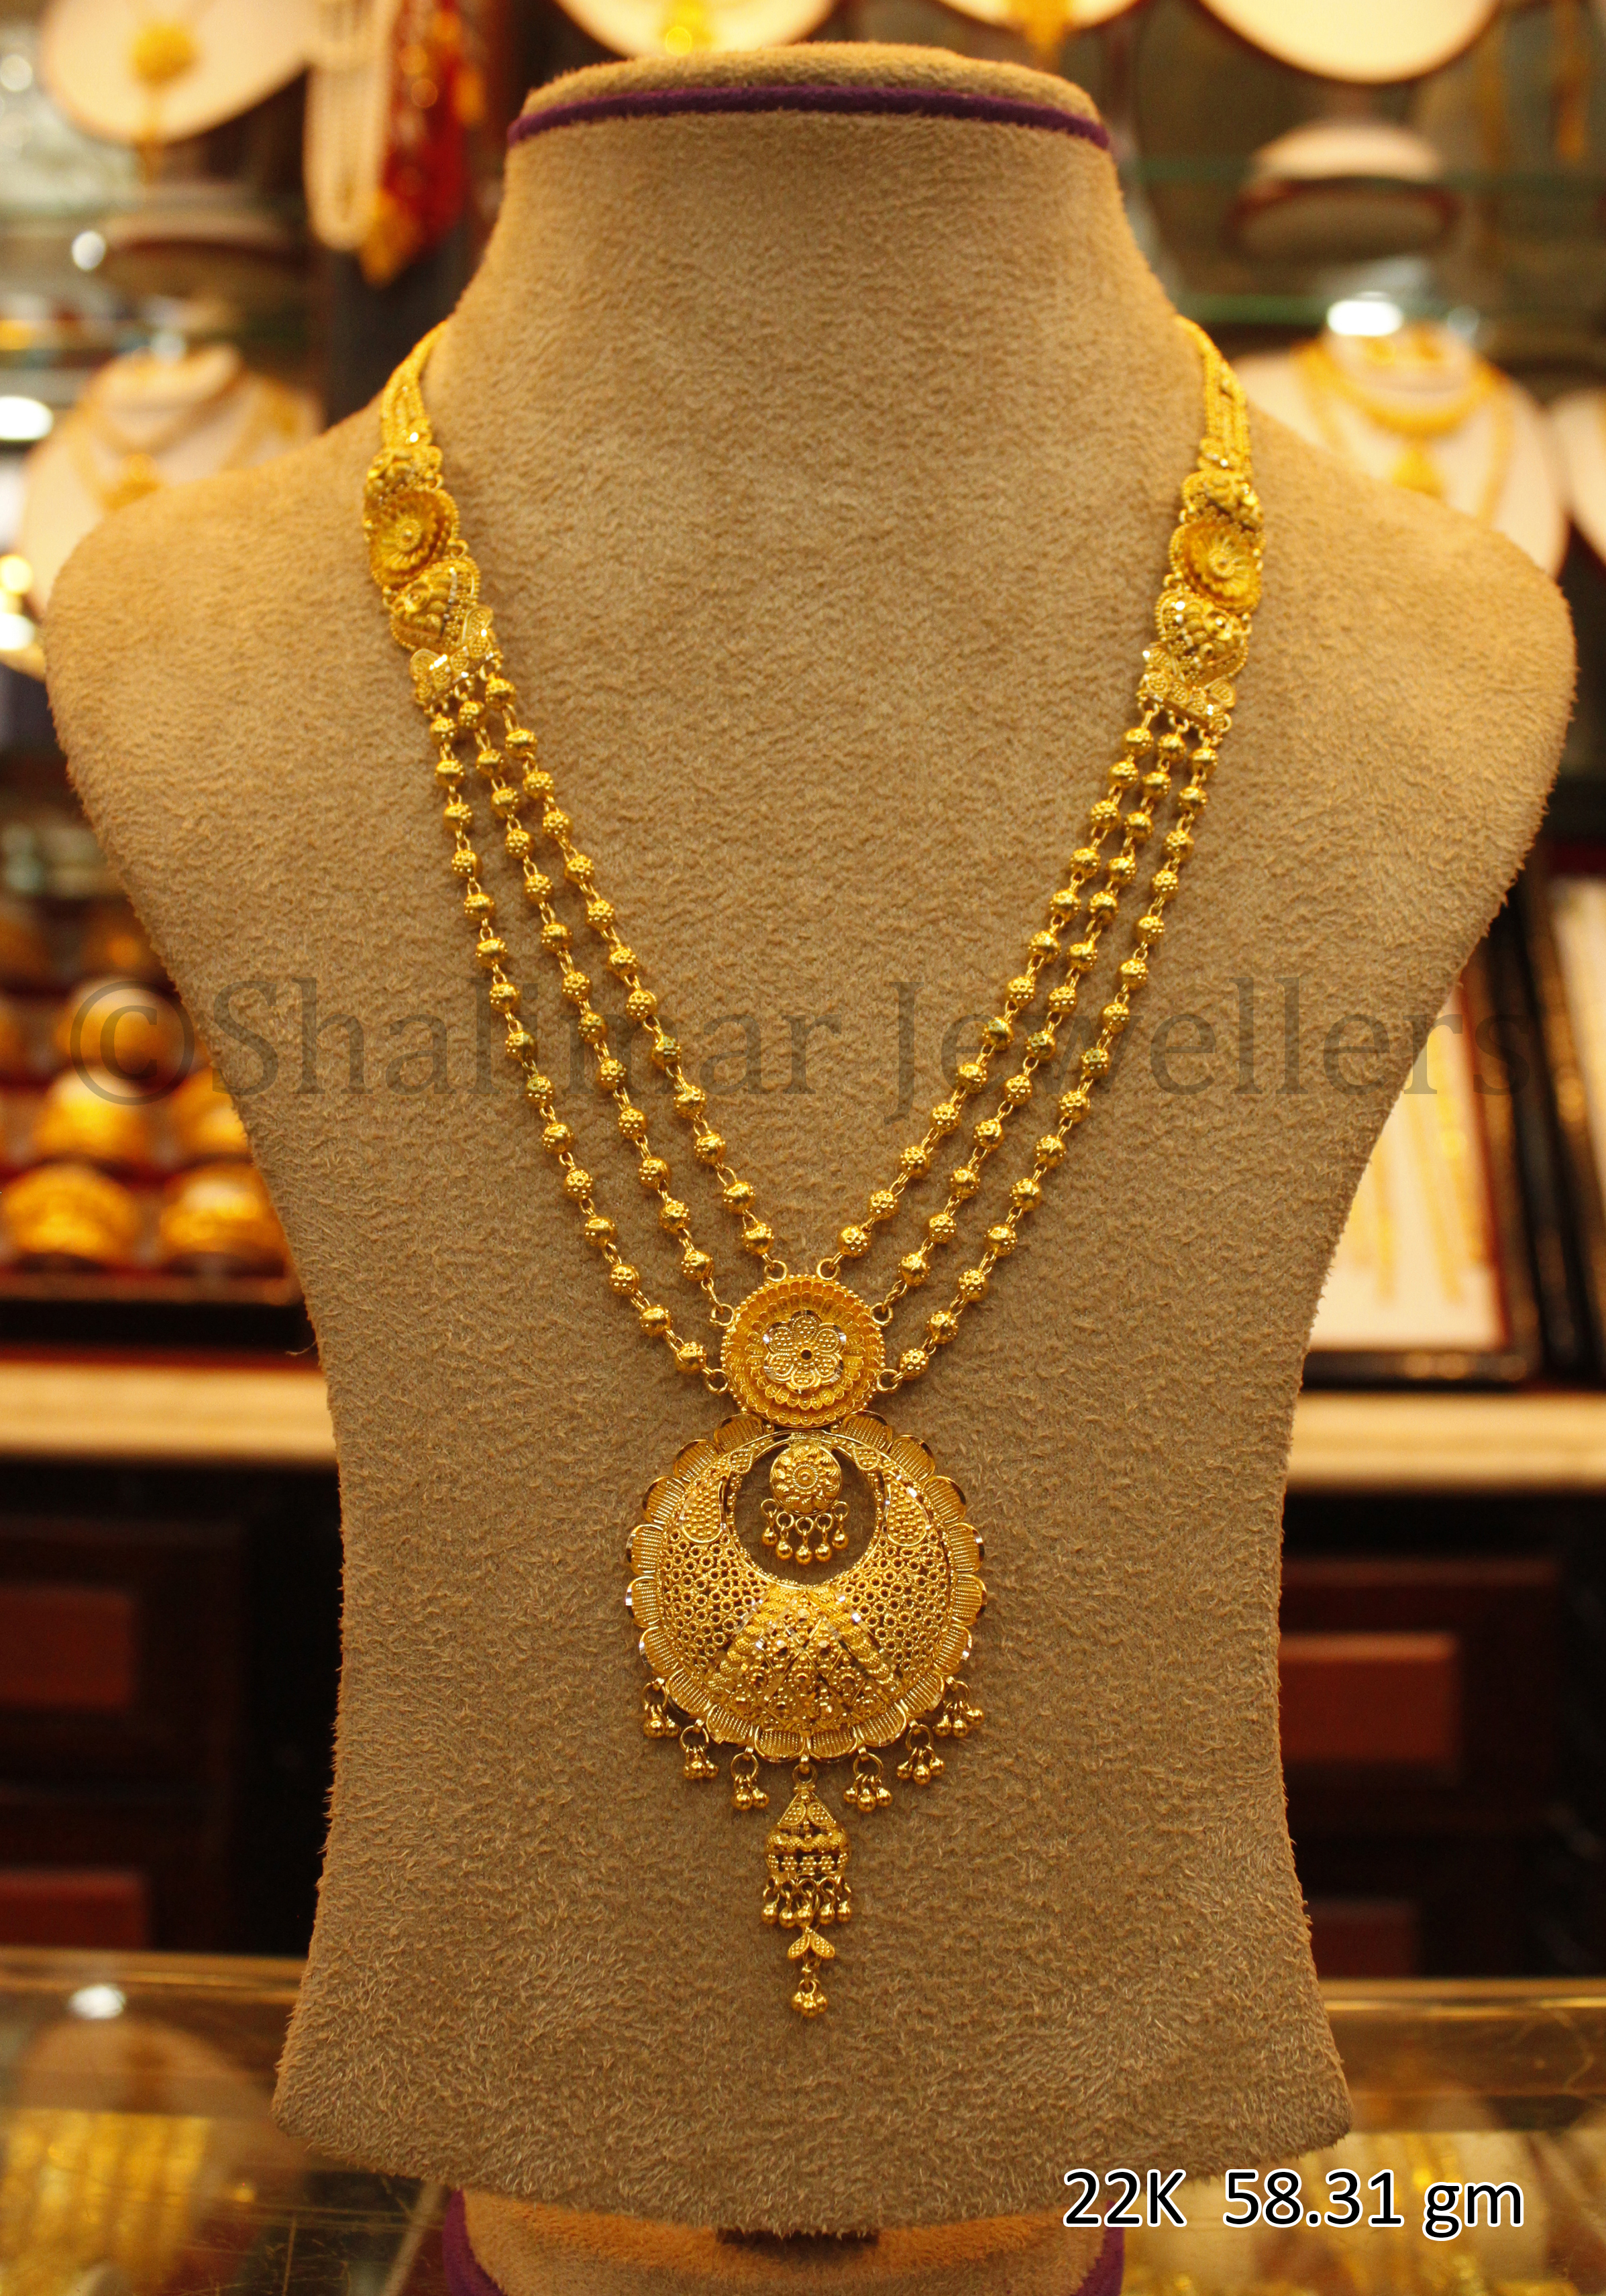 Wedding Gold Necklace 58 31 Gm Sm 005 By Shalimar